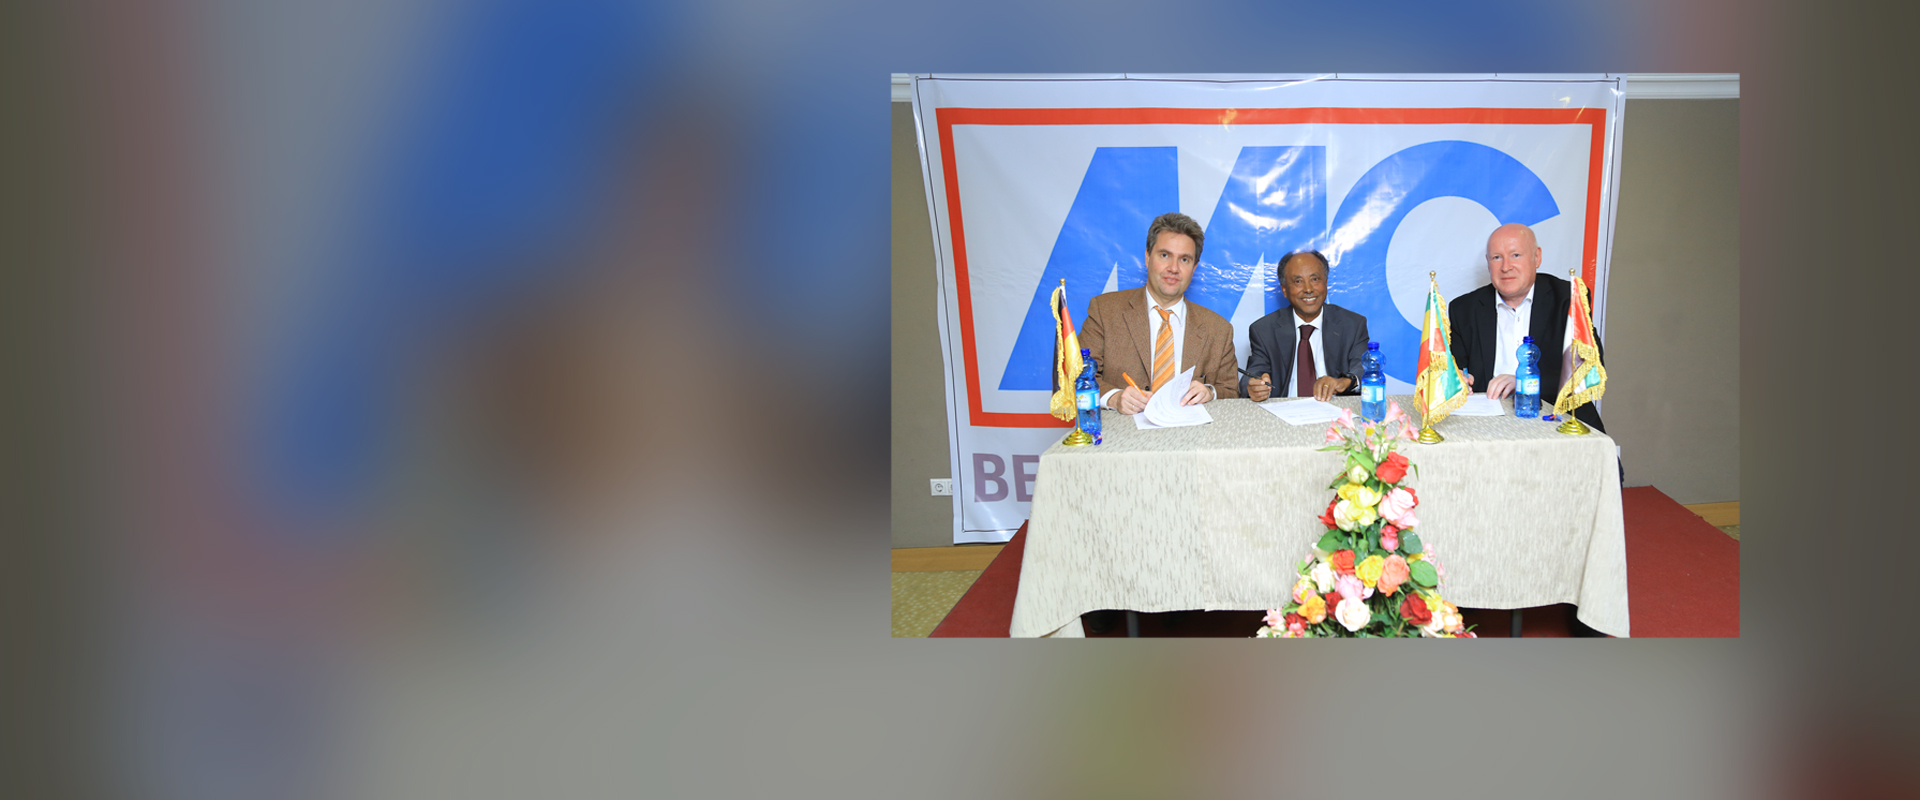 Completion of the transaction: MC acquires majority of a company in Ethiopia